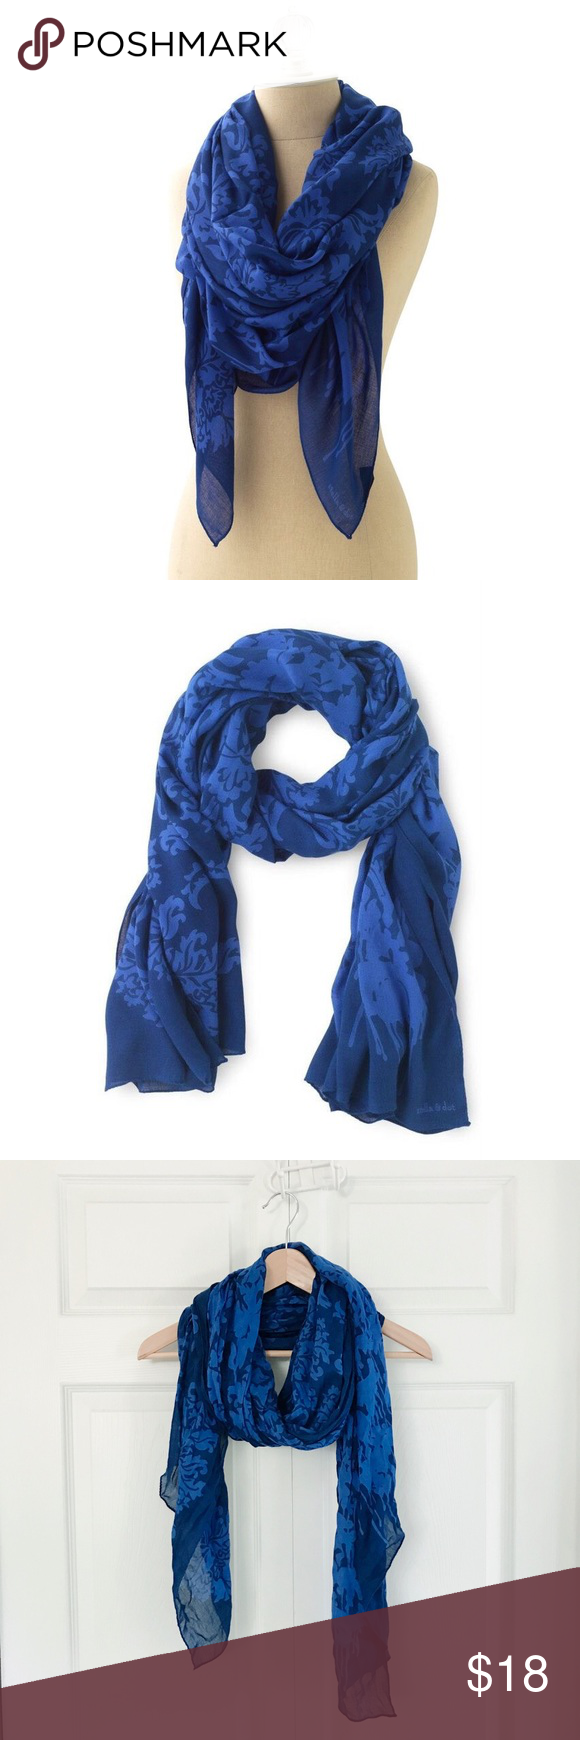 """Stella & Dot blue floral Bryant Park scarf / wrap Add a pop of color to any outfit with this luxuriously printed blue and navy rayon scarf from Stella & Dot. Generous 70"""" x 38"""" size means that can be worn so many ways. Go to YouTube and search for """"6 Ways to tie your Stella & Dot Scarf"""" by BStyled by Beth - she gives some great ideas that you may not know of yet!! Thin fabric means it folds up quite small for travel - perfect piece for airplane travel. In great condition; no snags or holes…"""